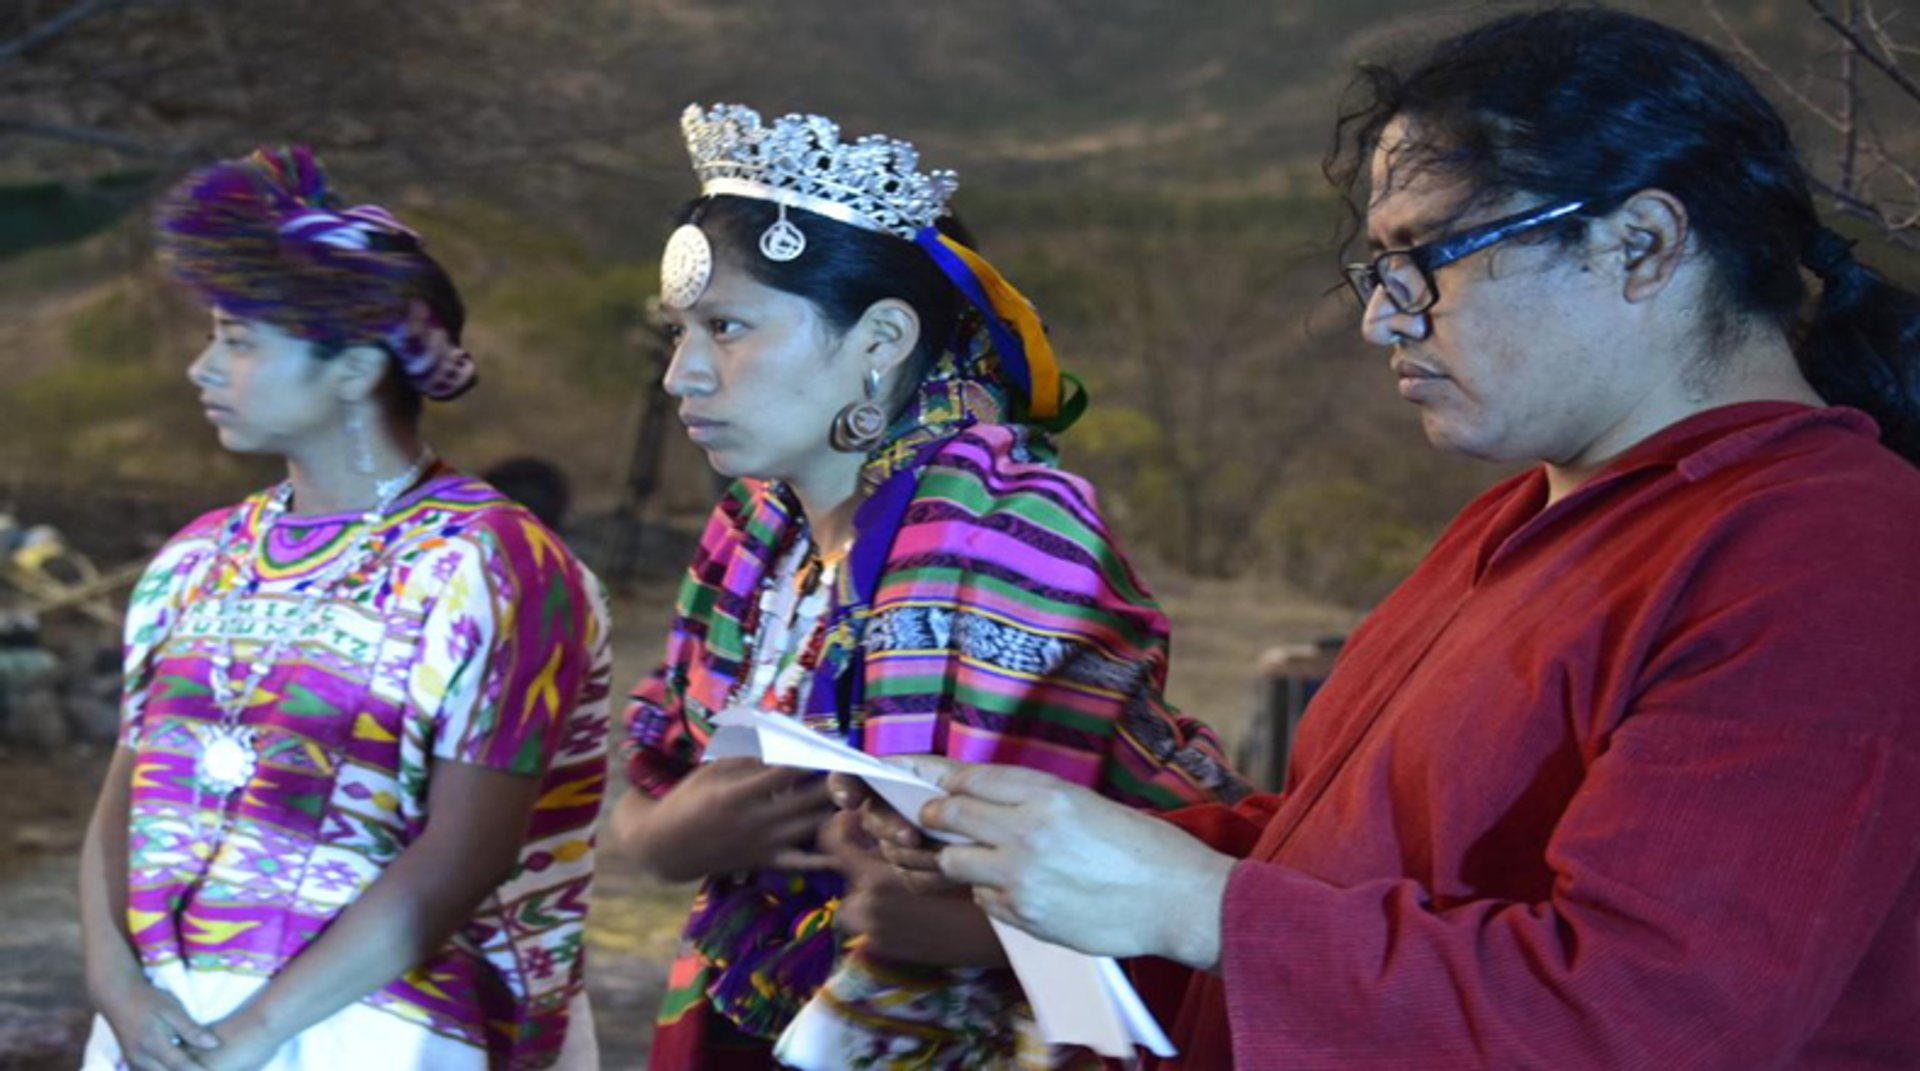 Mayan New Year in Guatemala - Best Season 2020